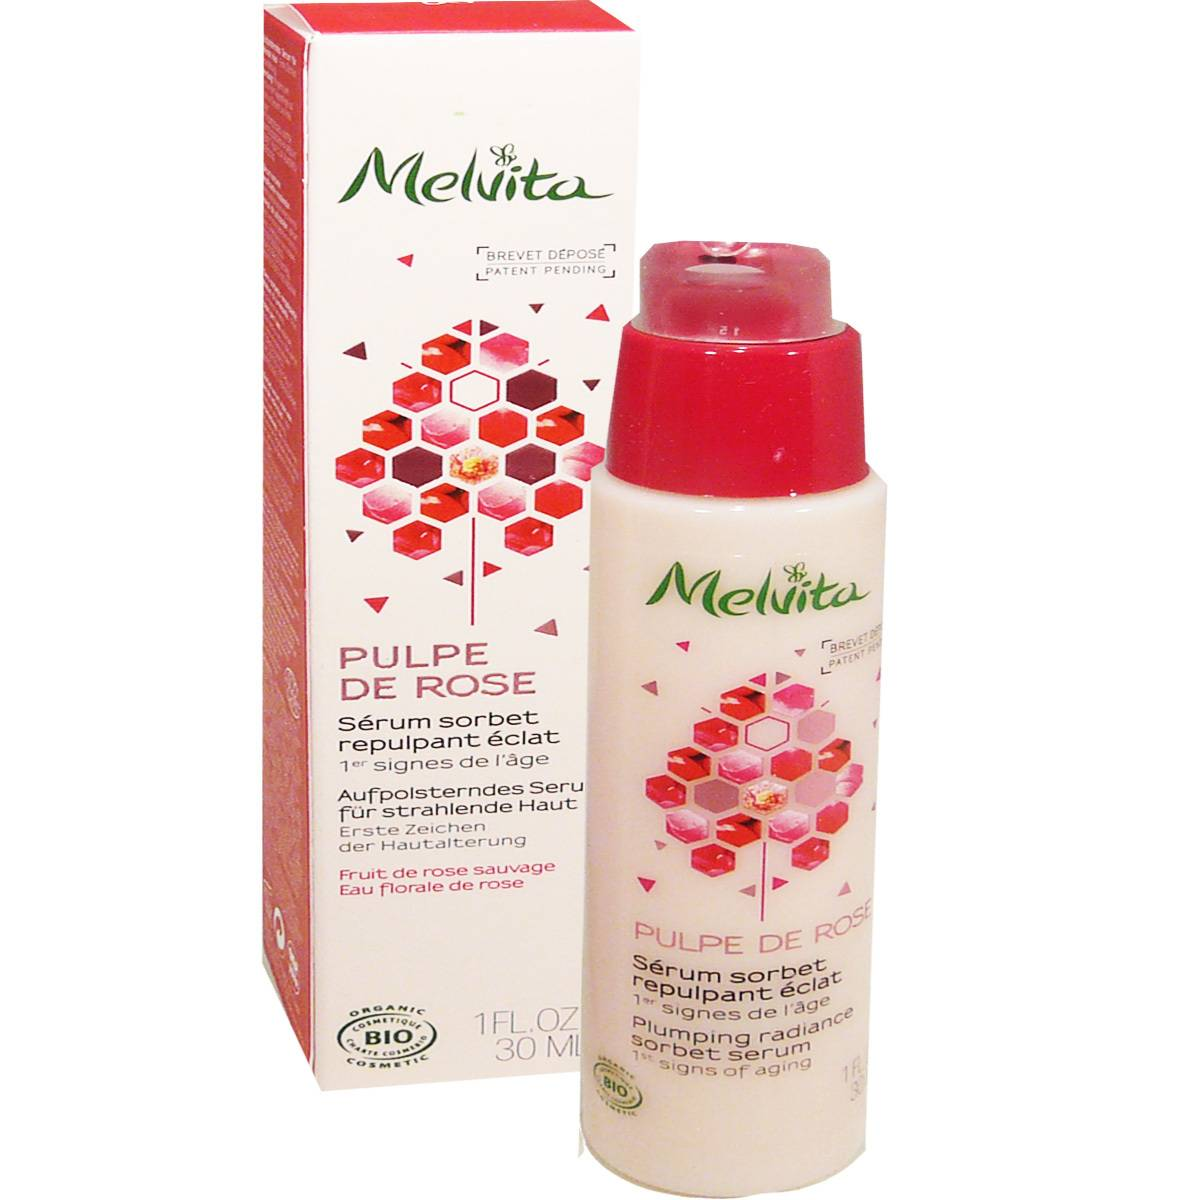 Melvita serum sorbet pulpe de rose 30 ml